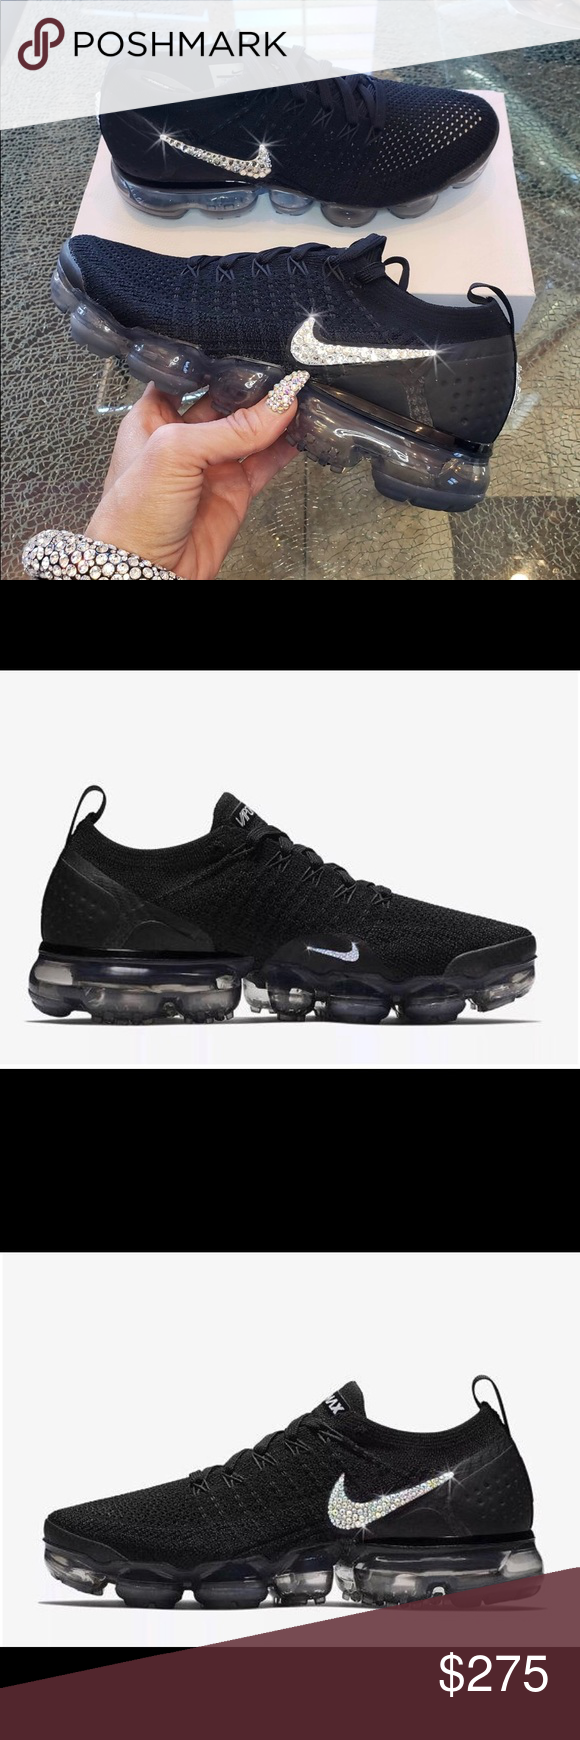 067329da894a5 Nike Air Vapormax Flyknit 2 w/Bling These are brand new Nike Air ...